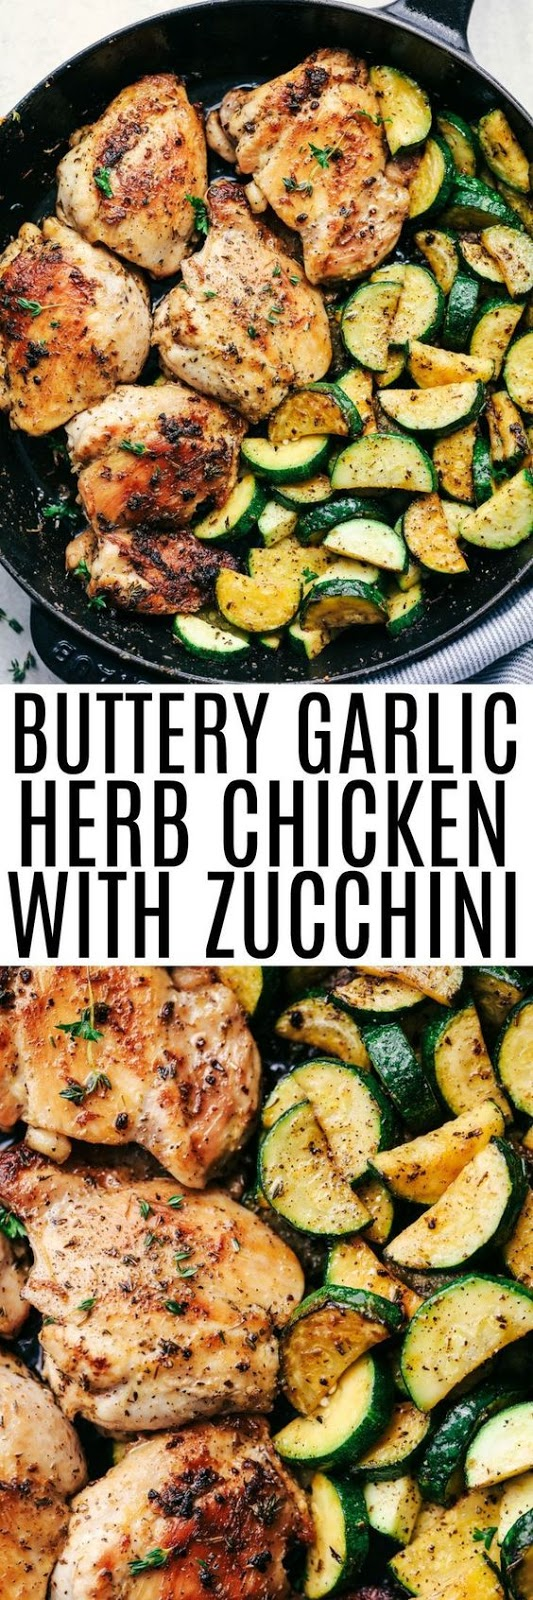 BUTTERY GARLIC HERB CHICKEN WITH ZUCCHINI